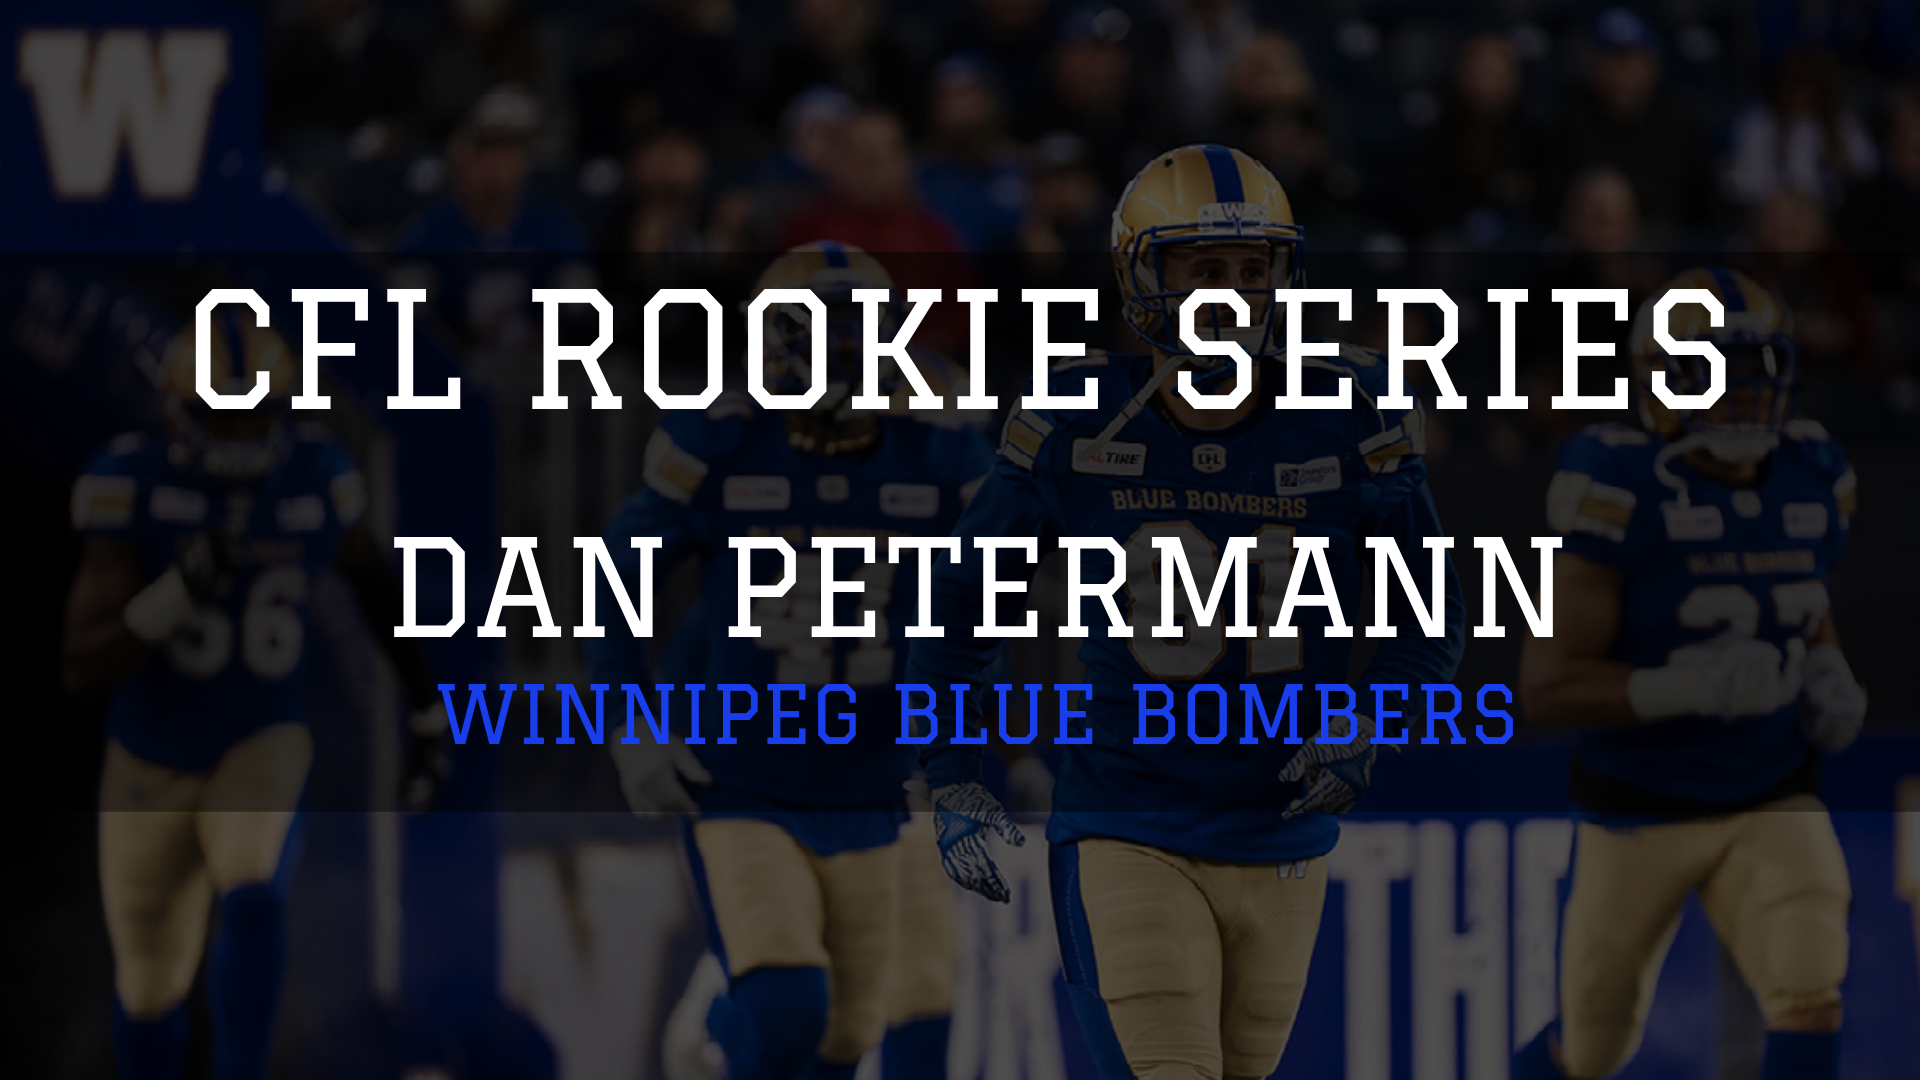 Dan Petermann - CFL Rookie Series